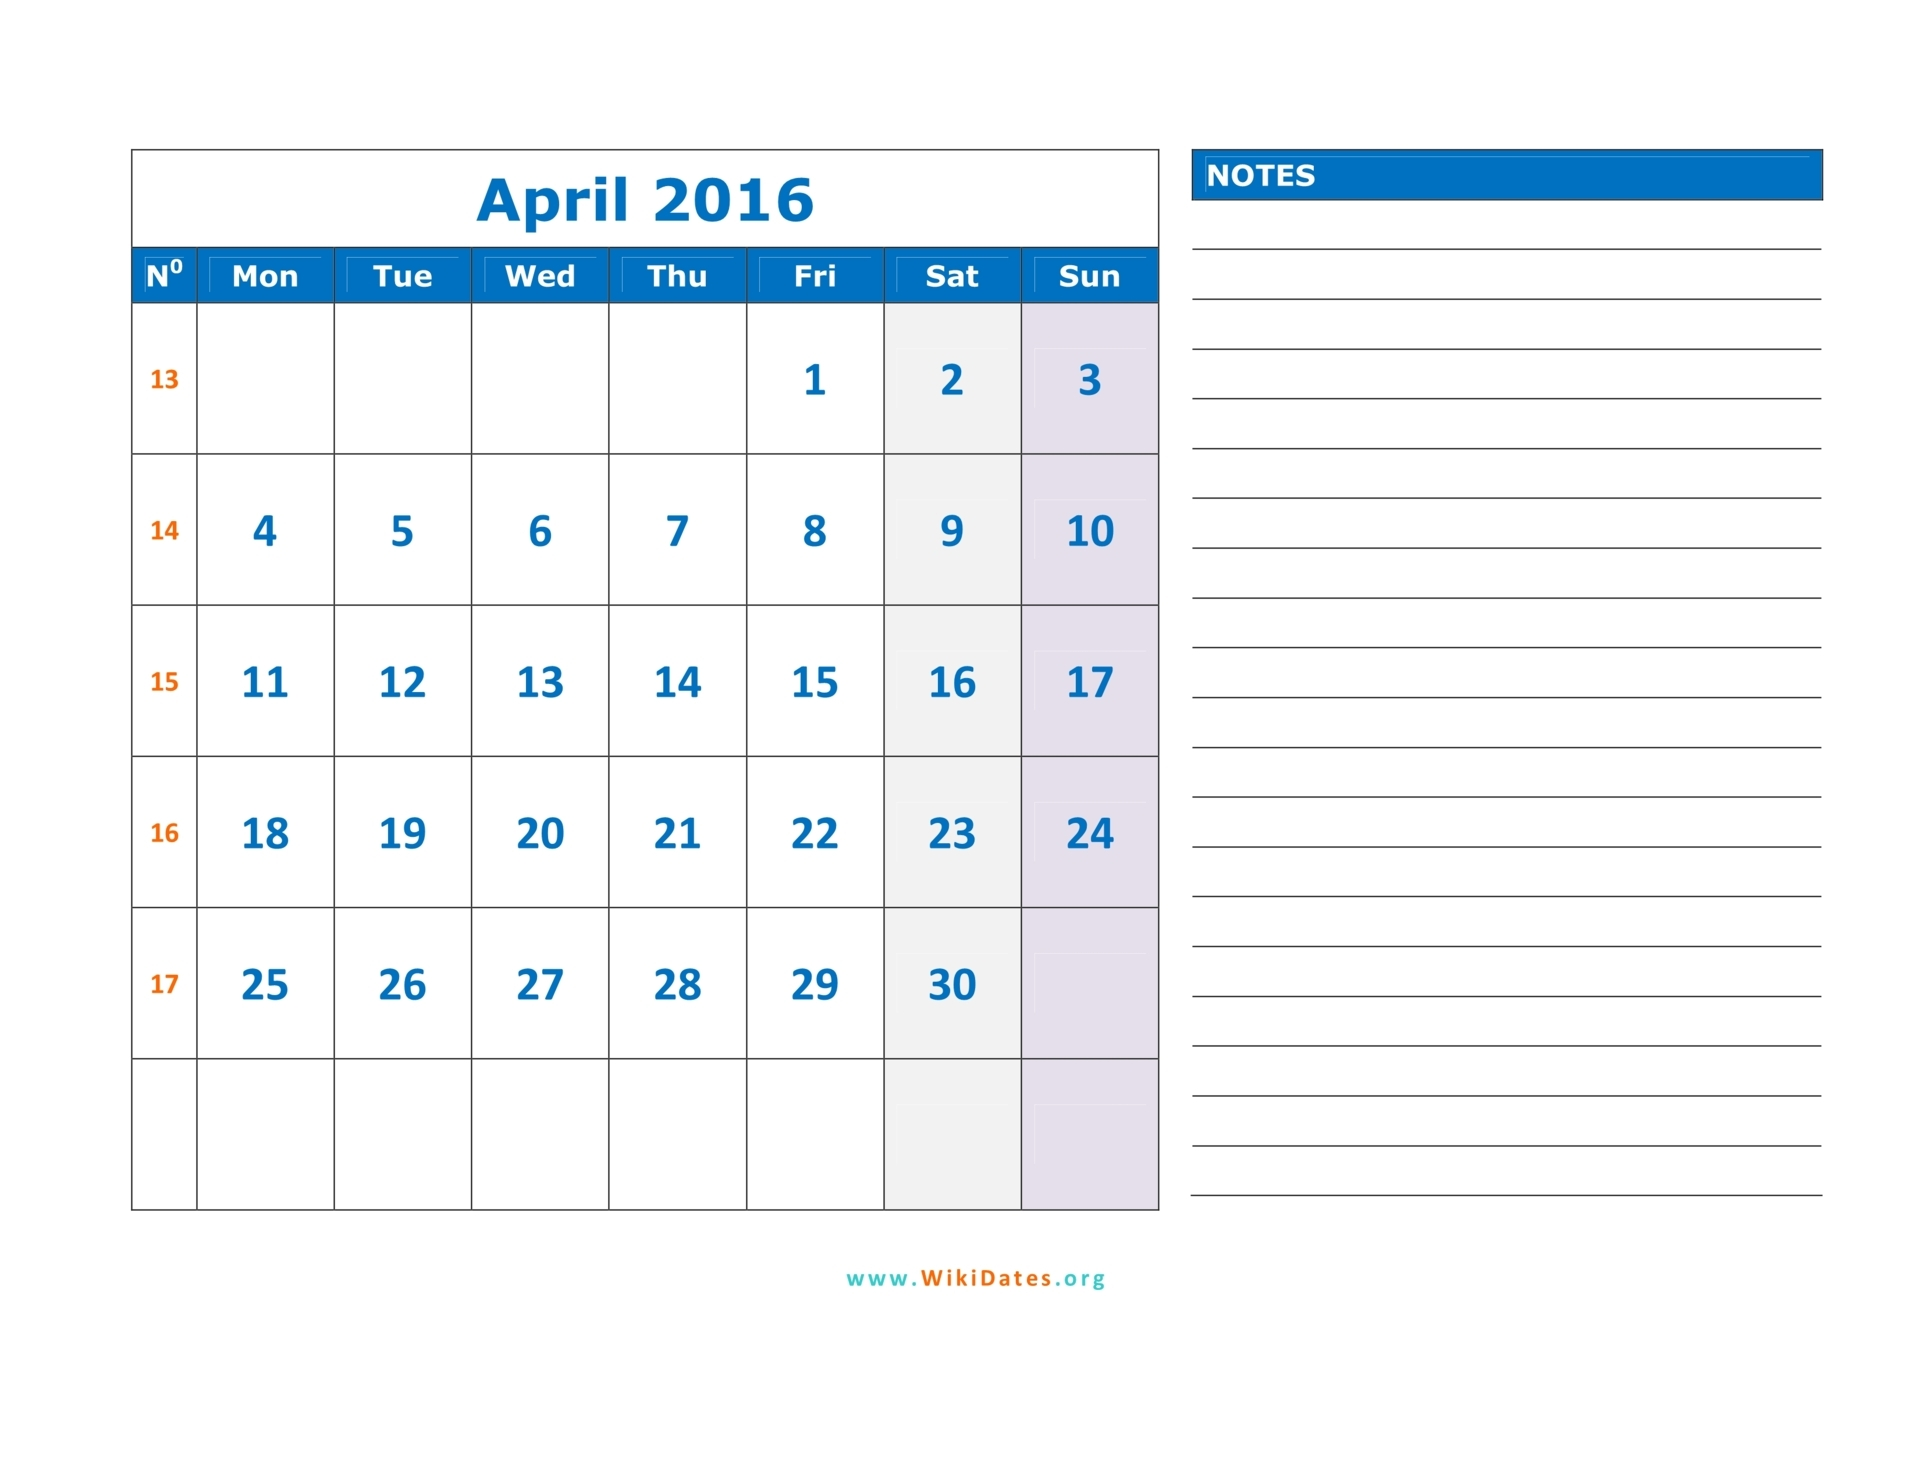 April 2016 Calendar | WikiDates.org